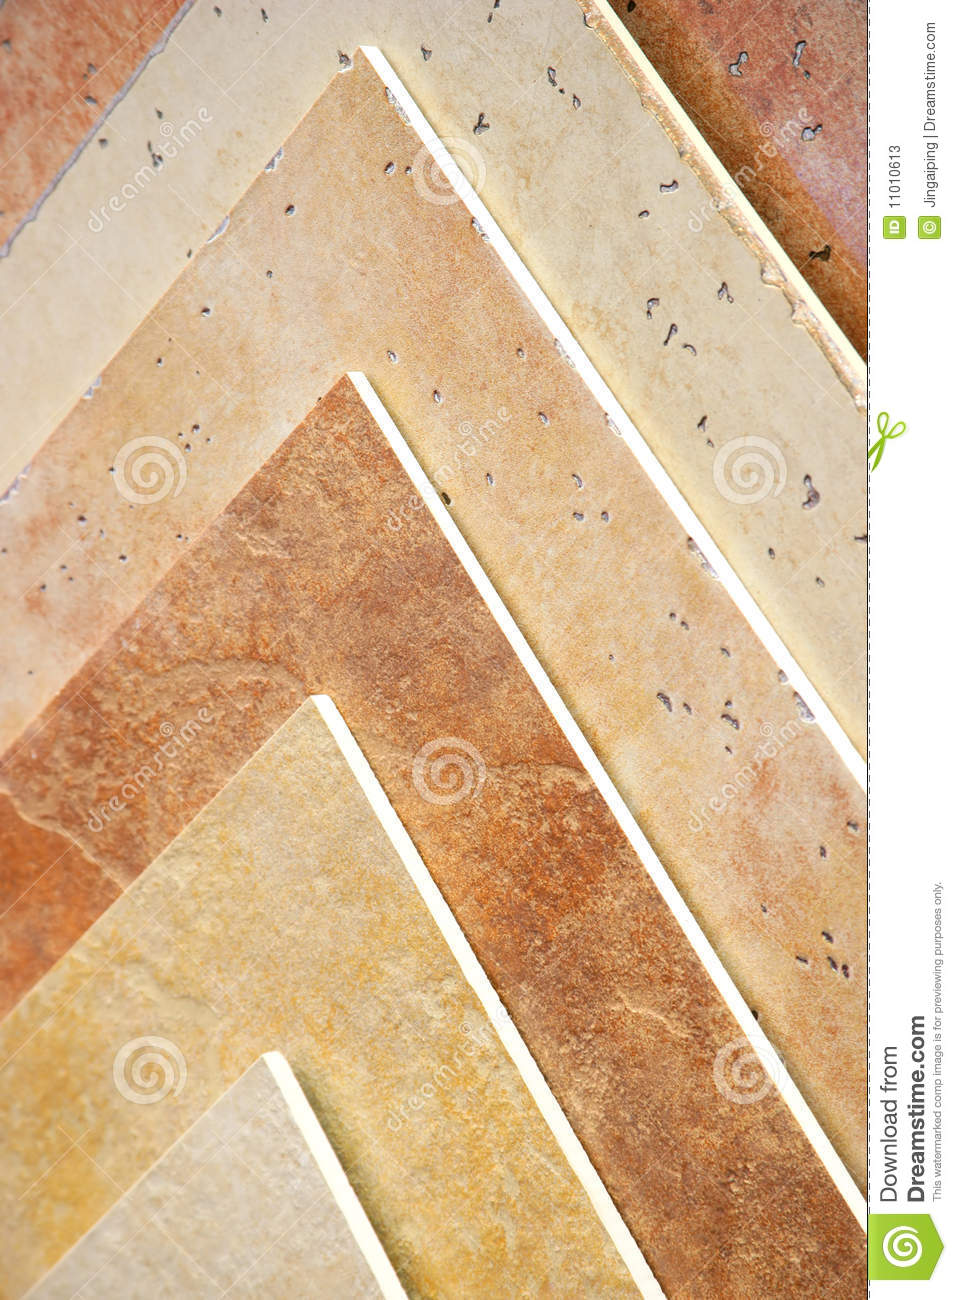 Antique floor tiles stock image image of craft craftsmen 11010613 antique floor tiles doublecrazyfo Image collections